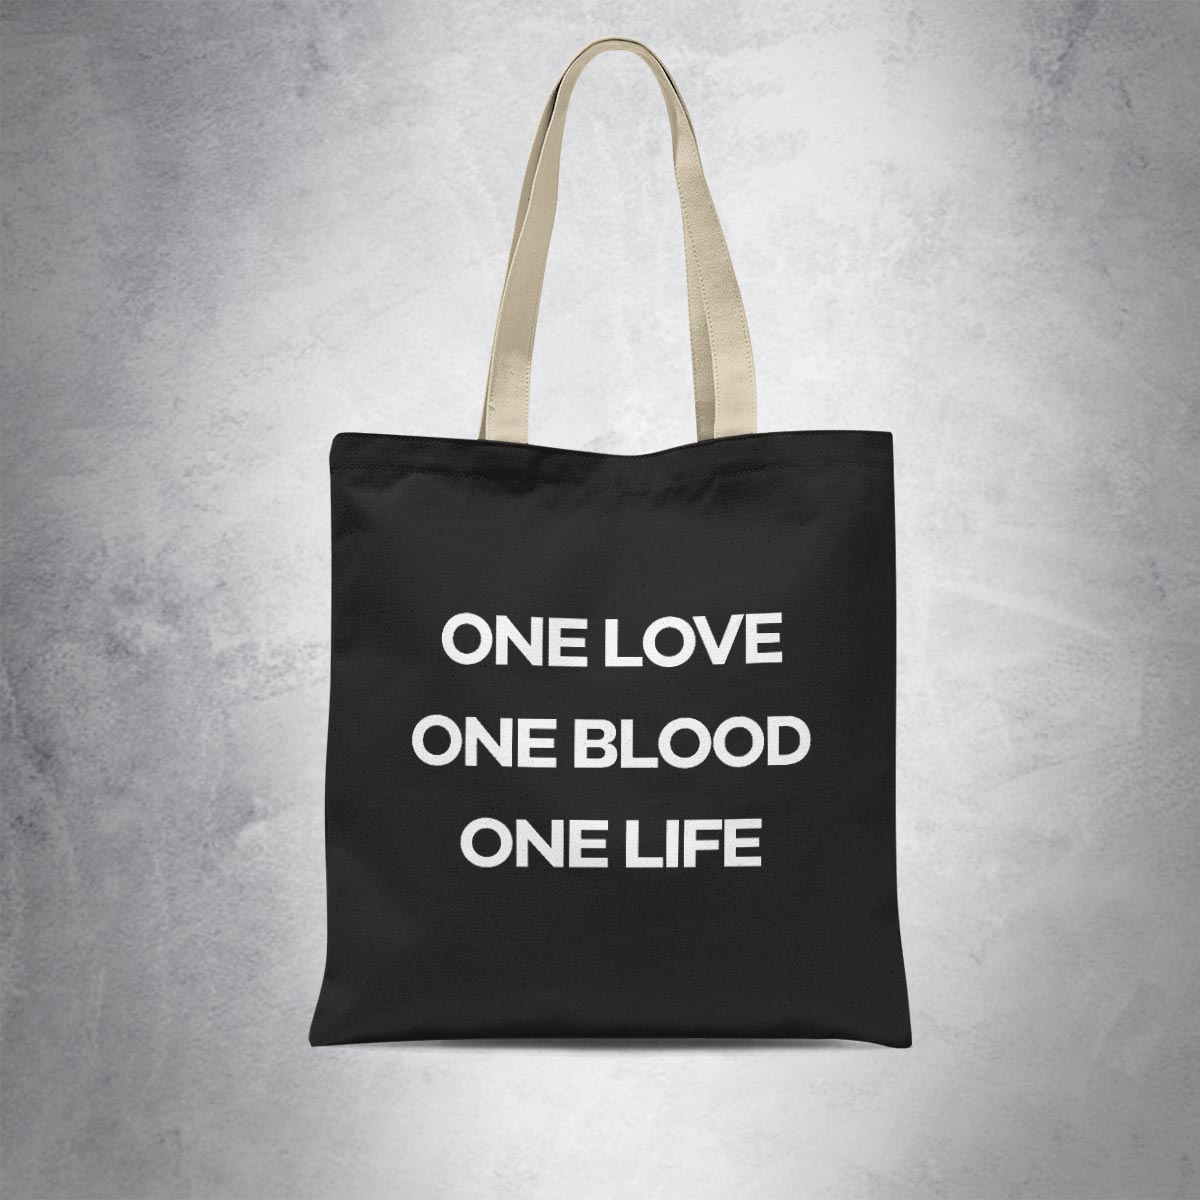 U2 - One love One blood One life